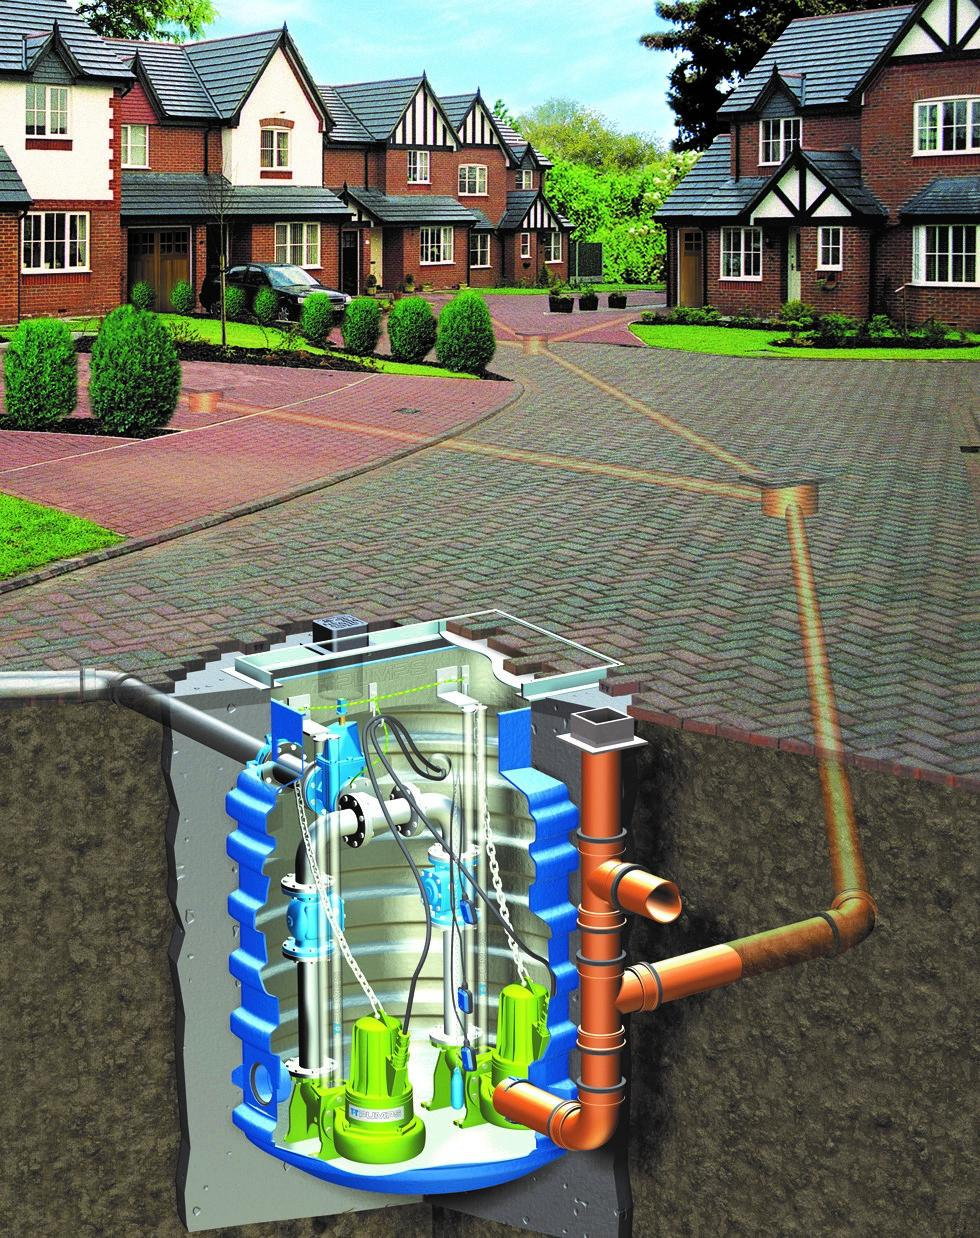 Pump Know How: Is a Submersible Pump the Best Option?